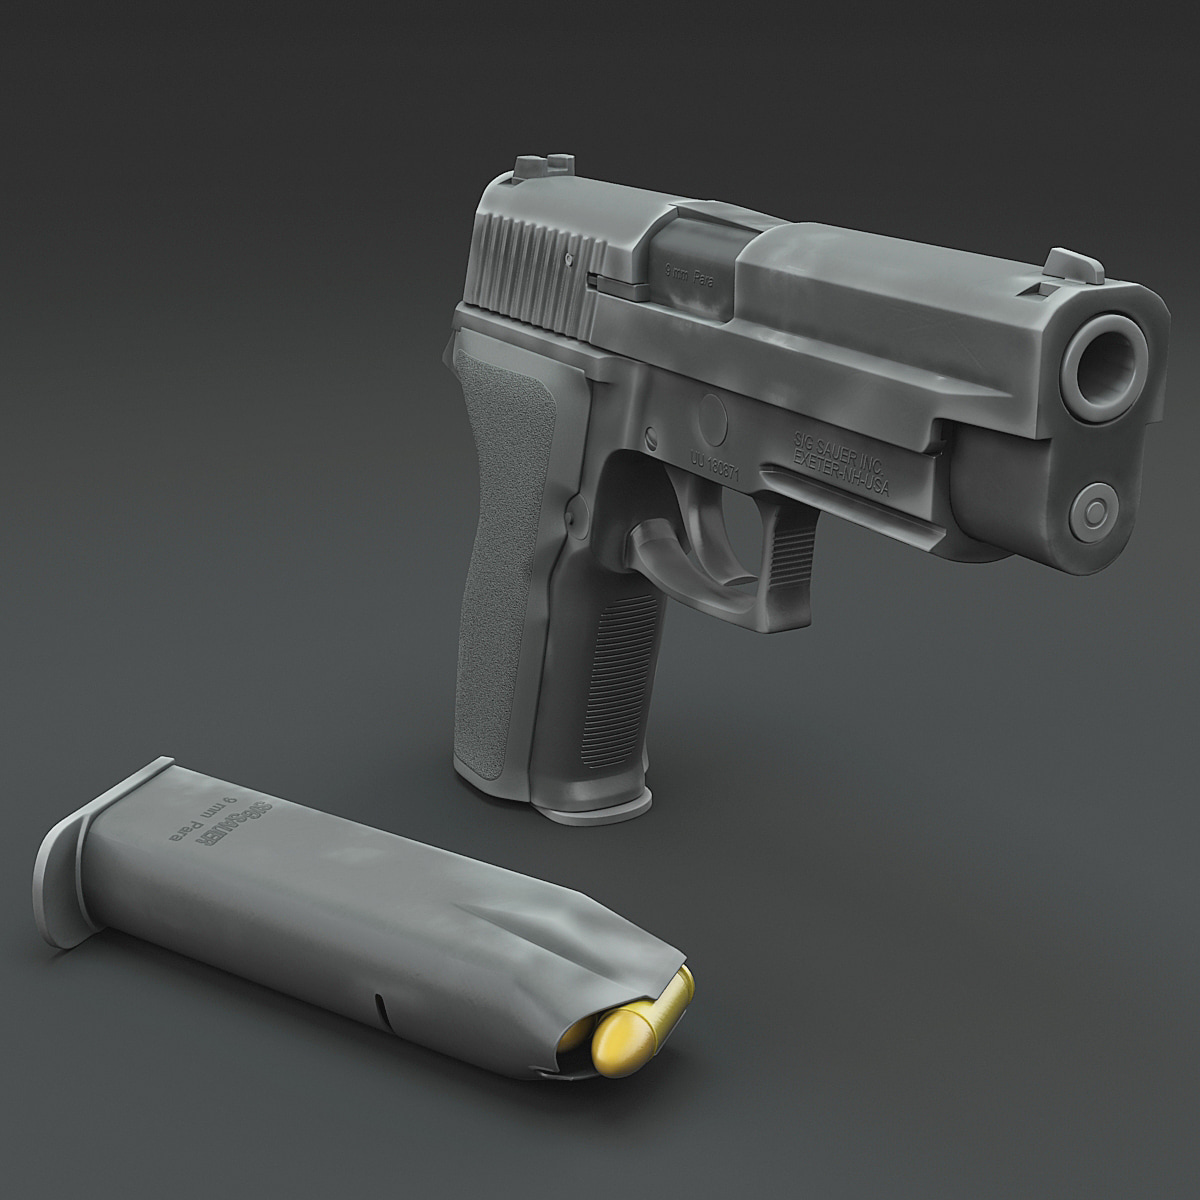 SIG_Sauer_P226_Collection_Vray_1.jpg